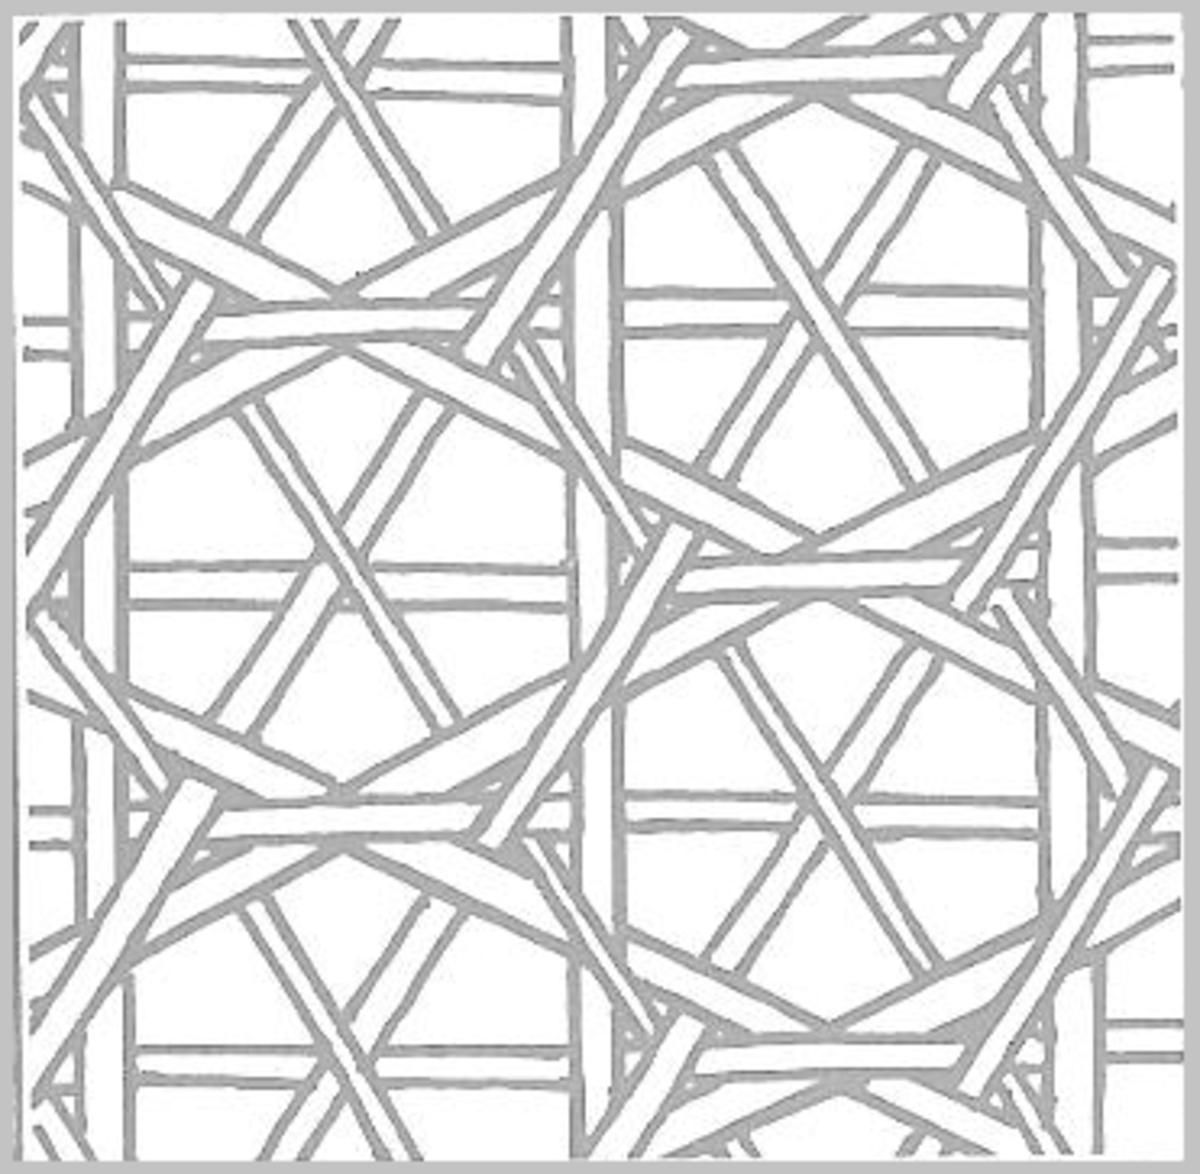 Figure 6: Another Weaving Pattern